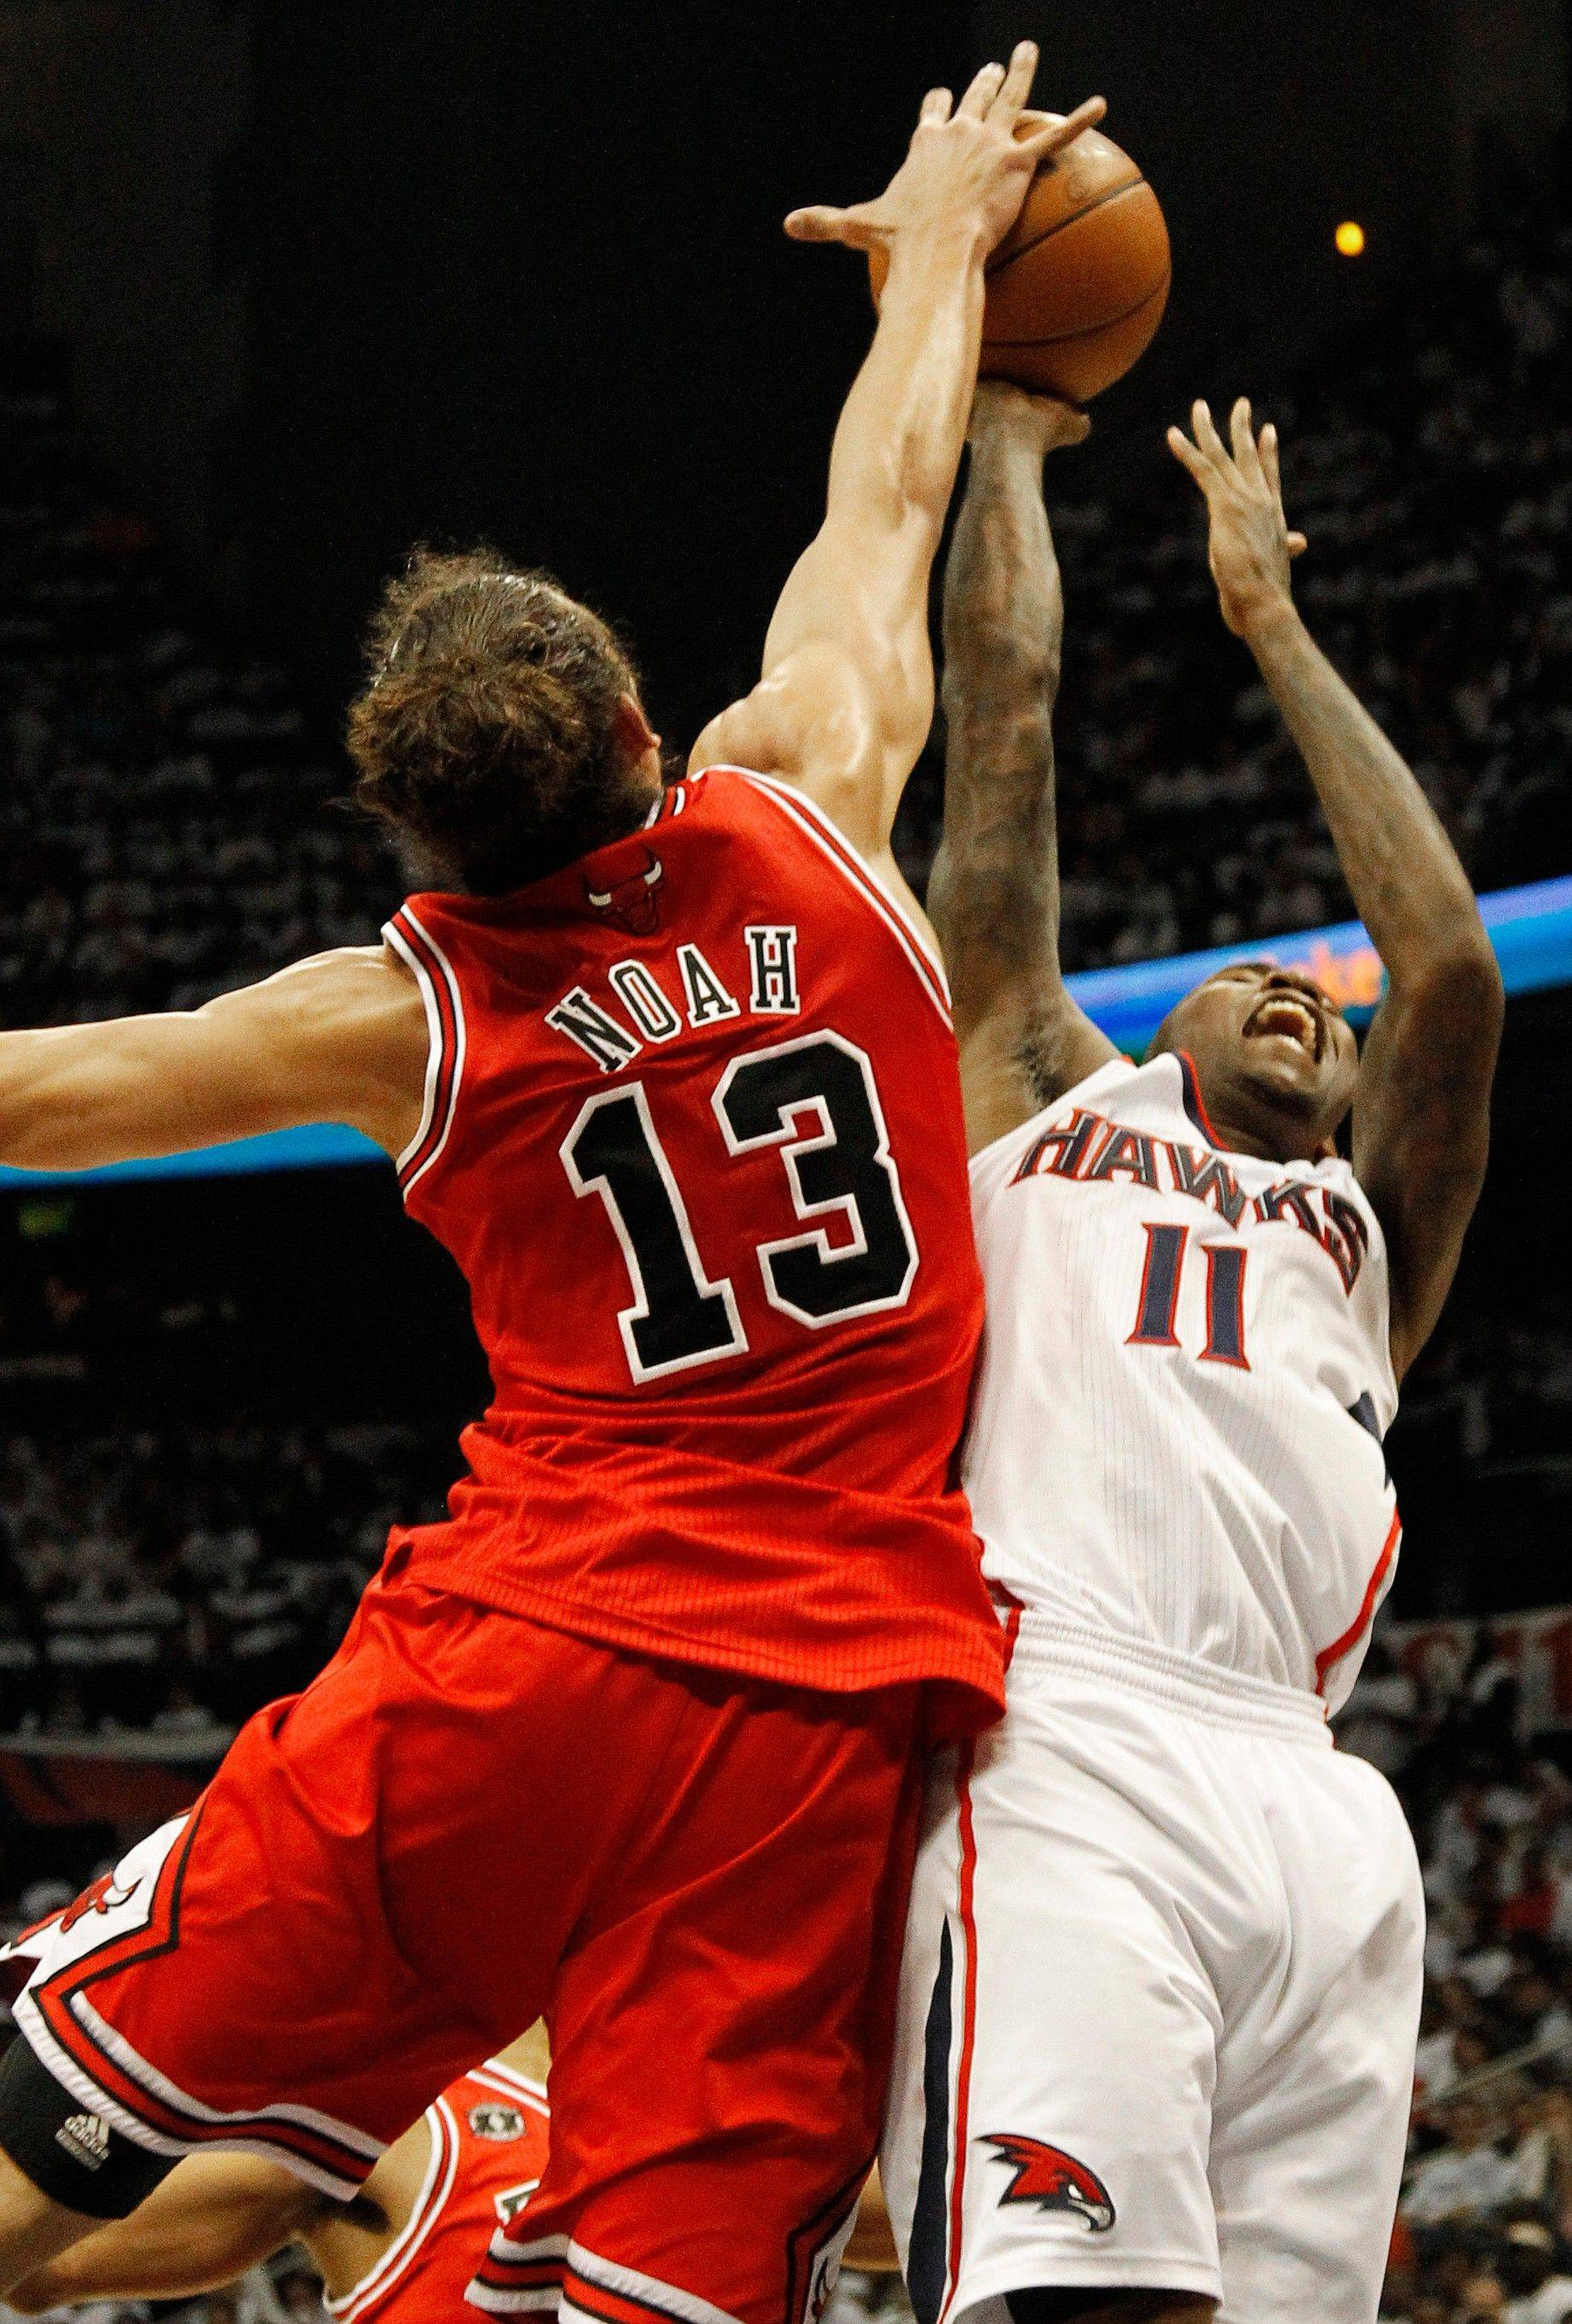 Atlanta Hawks guard Jamal Crawford and Chicago Bulls center Joakim Noah vie for a loose ball in the first quarter of Game 6.